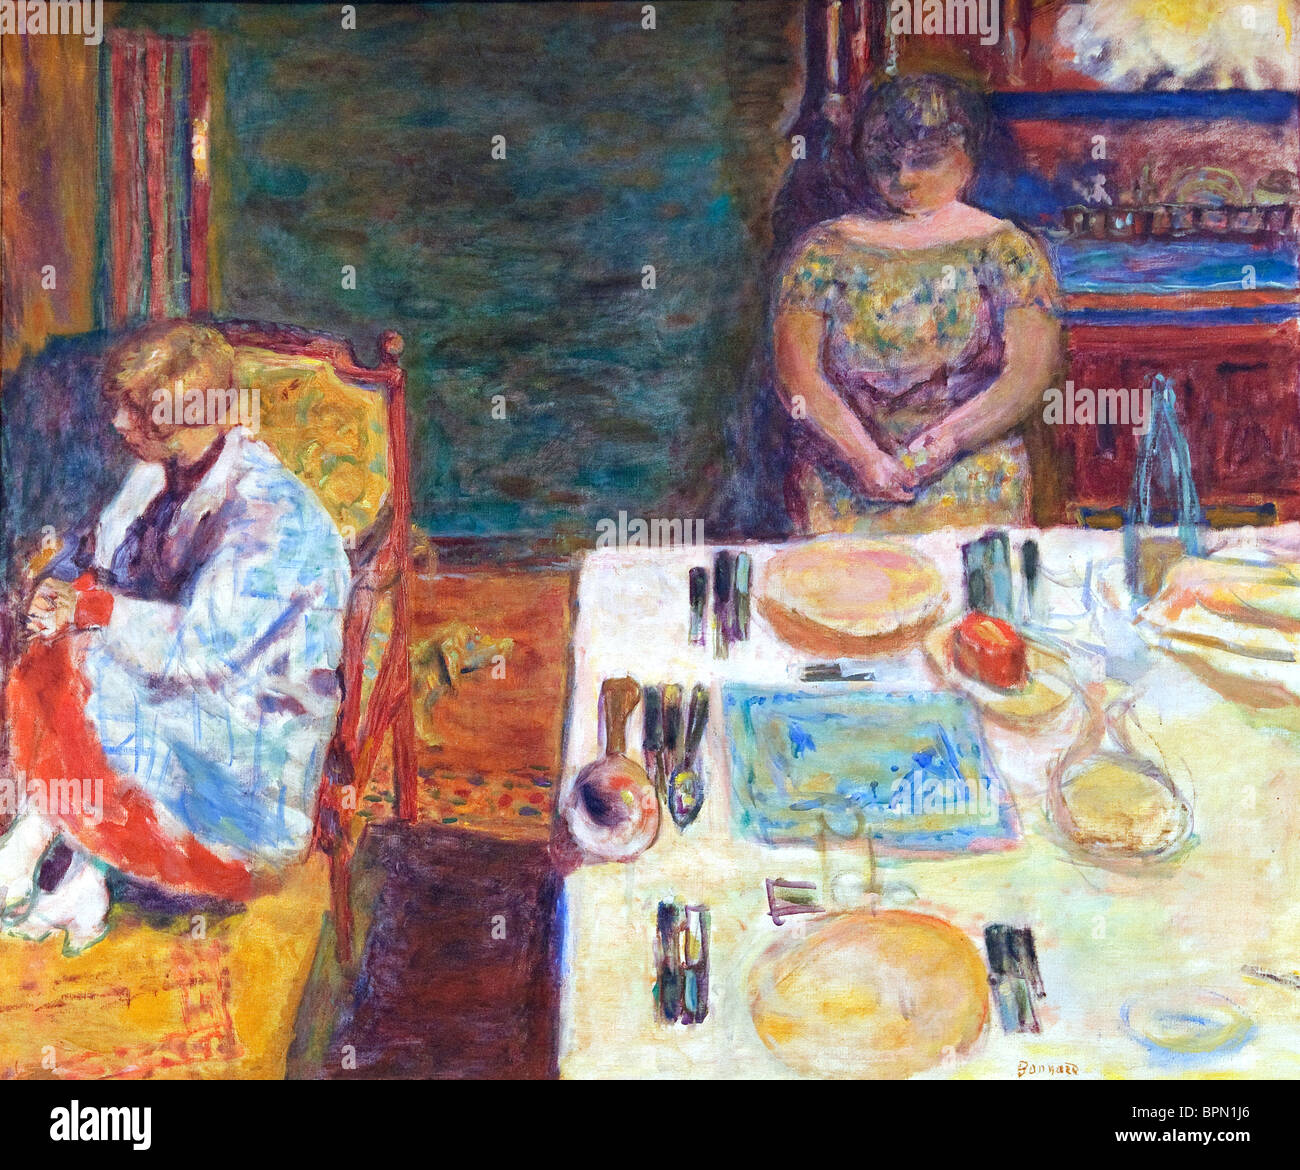 Before Dinner, 1924, by Pierre Bonnard - Stock Image